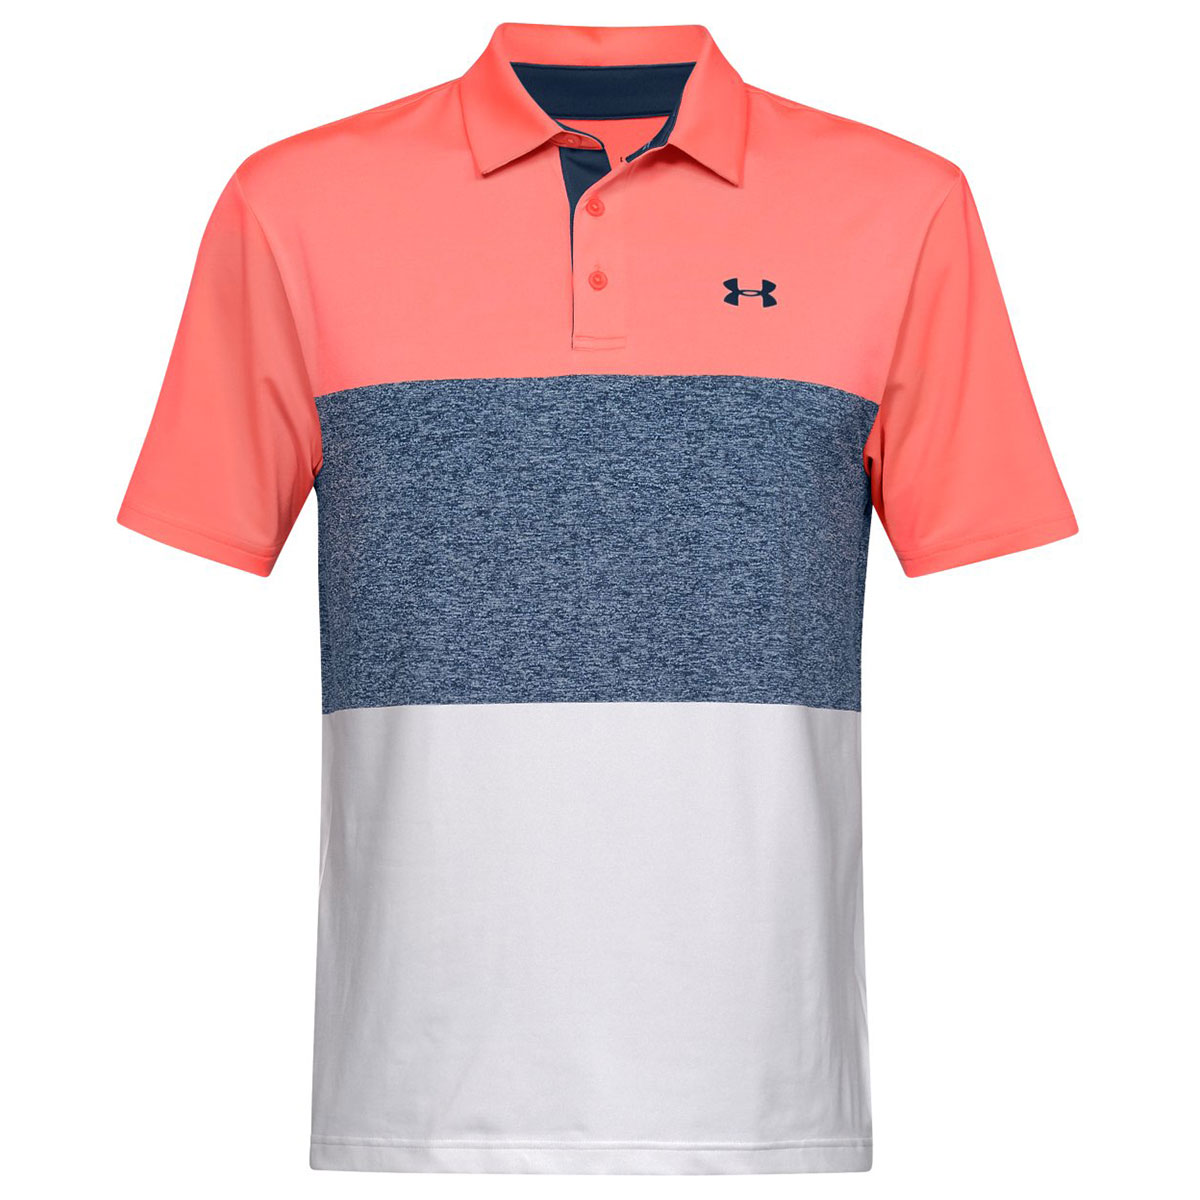 Under-Armour-Mens-2019-Playoff-Polo-2-0-Breathable-Light-Stretch-Polo-Shirt thumbnail 56